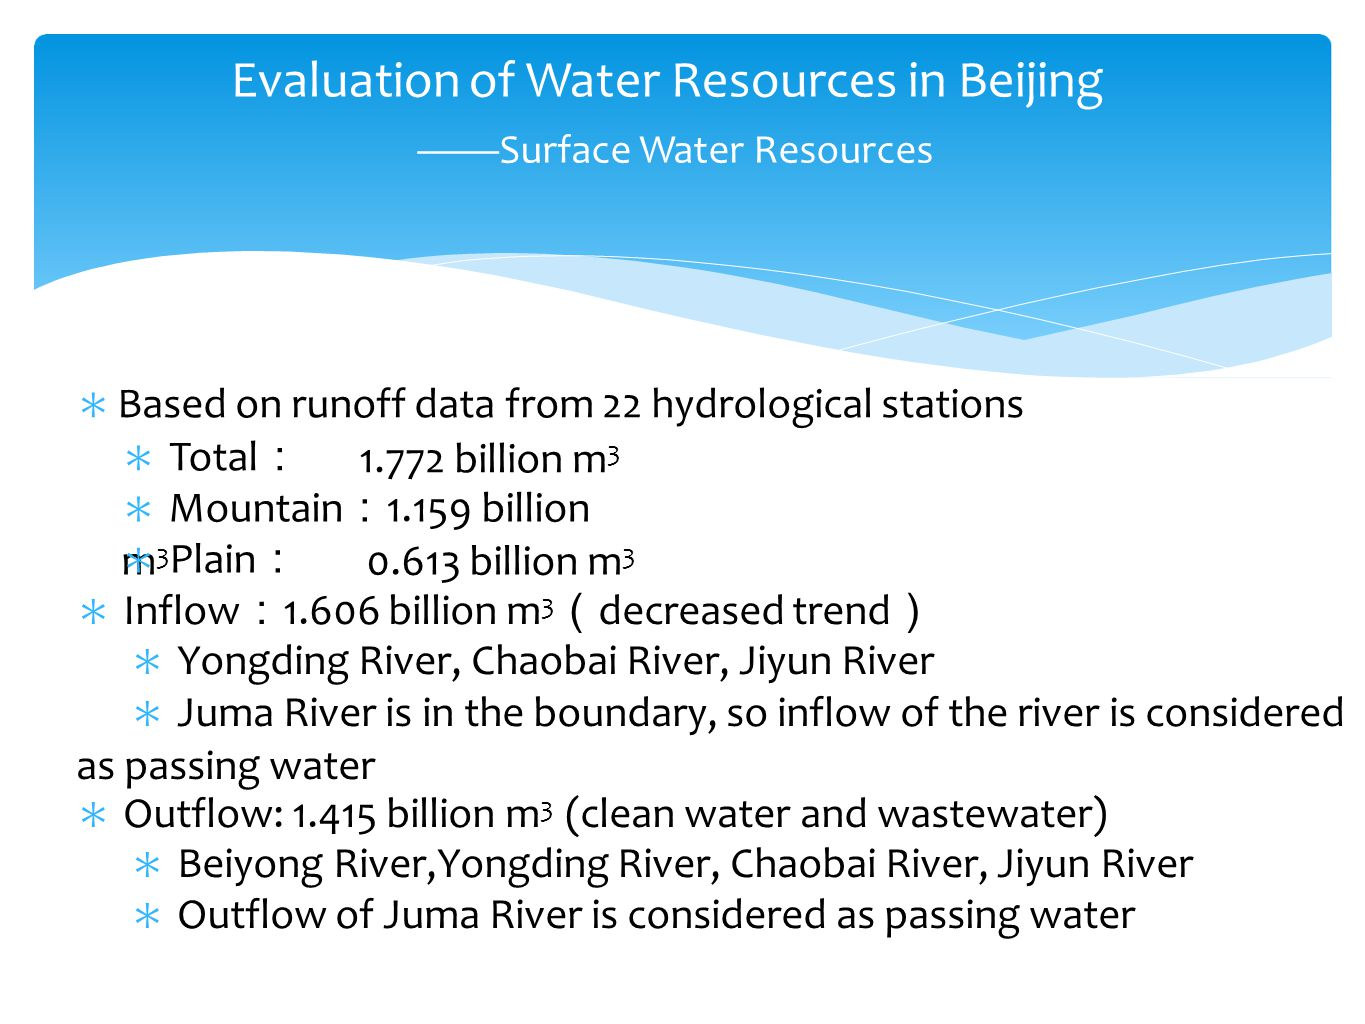 ∗ Based on runoff data from 22 hydrological stations ∗ Total : 1.772 billion m 3 ∗ Mountain : 1.159 billion m 3 ∗ Plain : 0.613 billion m 3 ∗ Inflow : 1.606 billion m 3 ( decreased trend ) ∗ Yongding River, Chaobai River, Jiyun River ∗ Juma River is in the boundary, so inflow of the river is considered as passing water ∗ Outflow: 1.415 billion m 3 (clean water and wastewater) ∗ Beiyong River,Yongding River, Chaobai River, Jiyun River ∗ Outflow of Juma River is considered as passing water Evaluation of Water Resources in Beijing ——Surface Water Resources